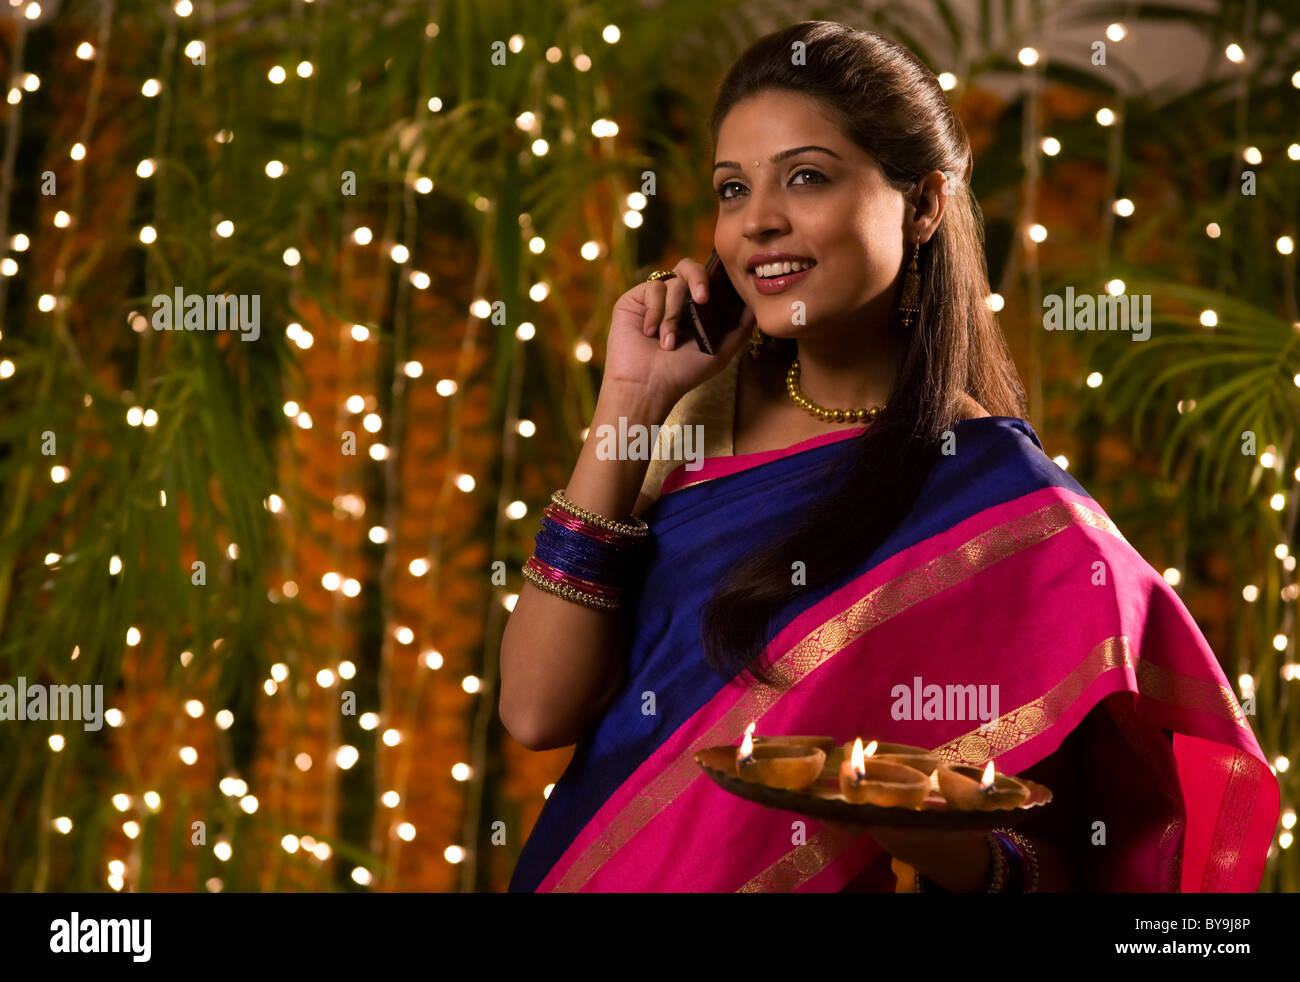 Woman talking on a mobile phone while holding a tray of diyas - Stock Image